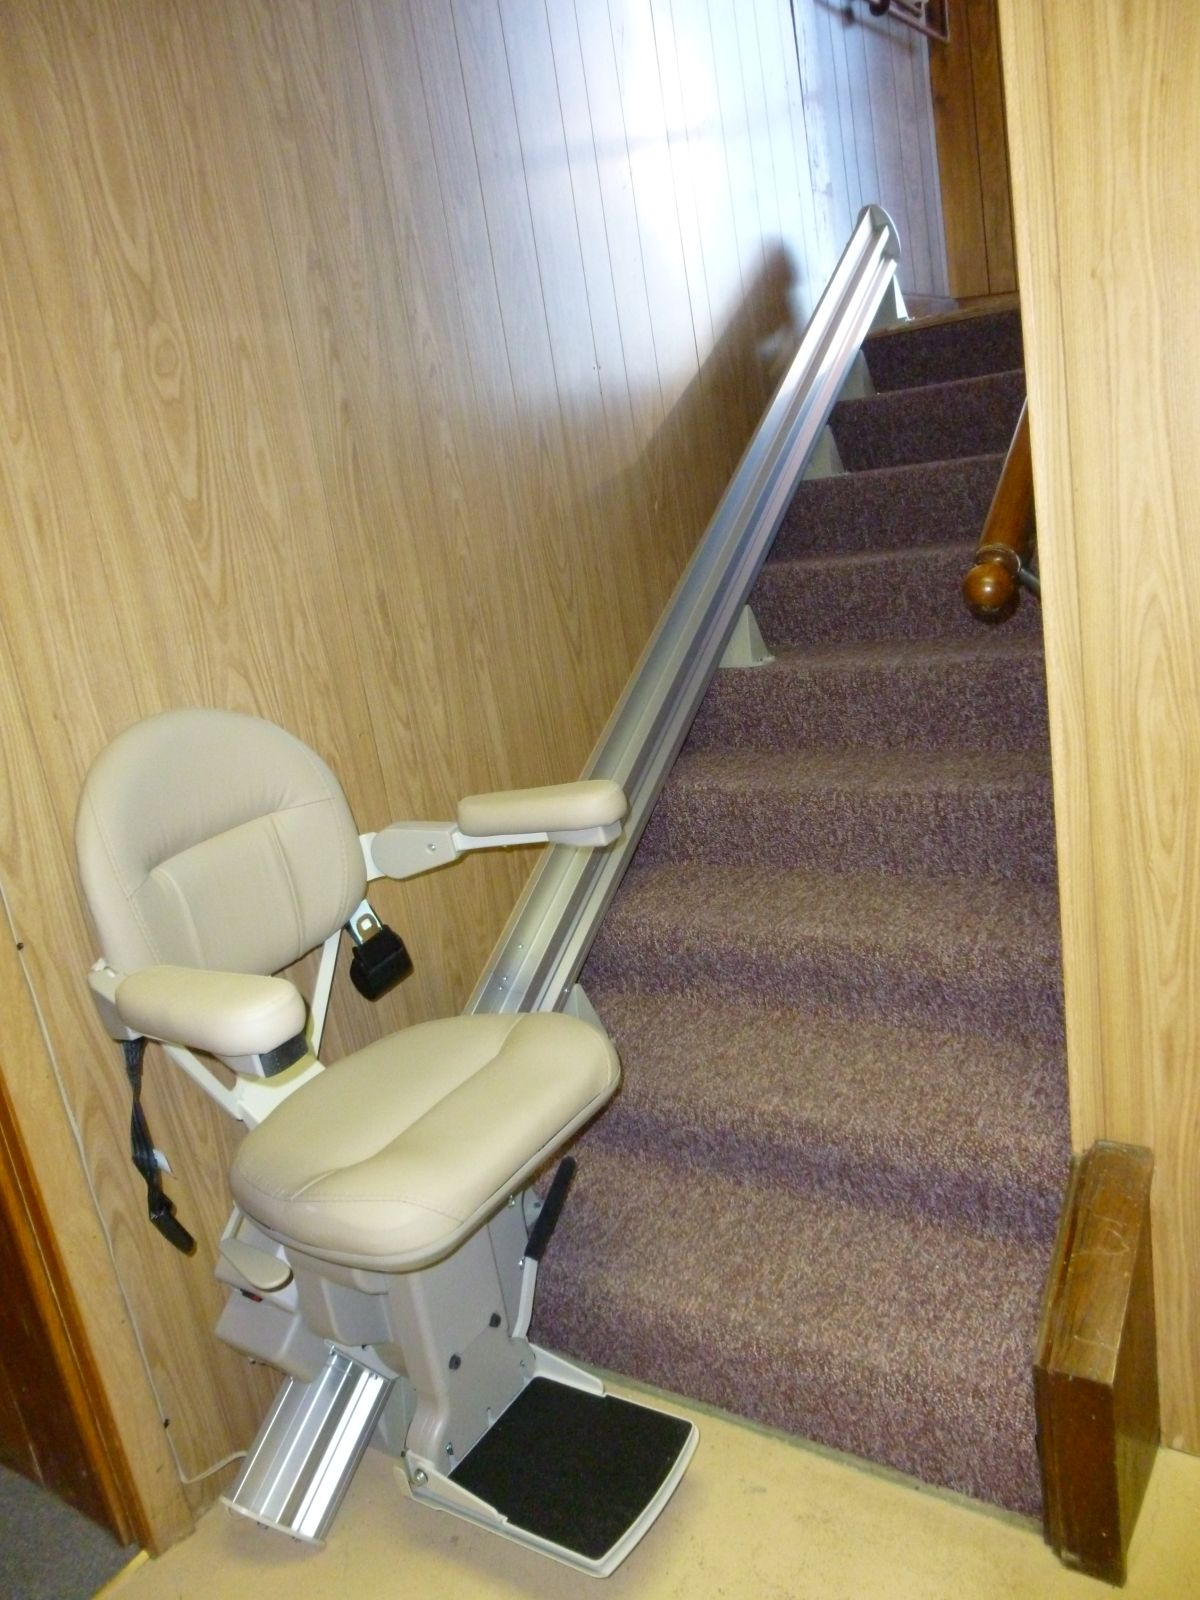 New stair lift going to basement.